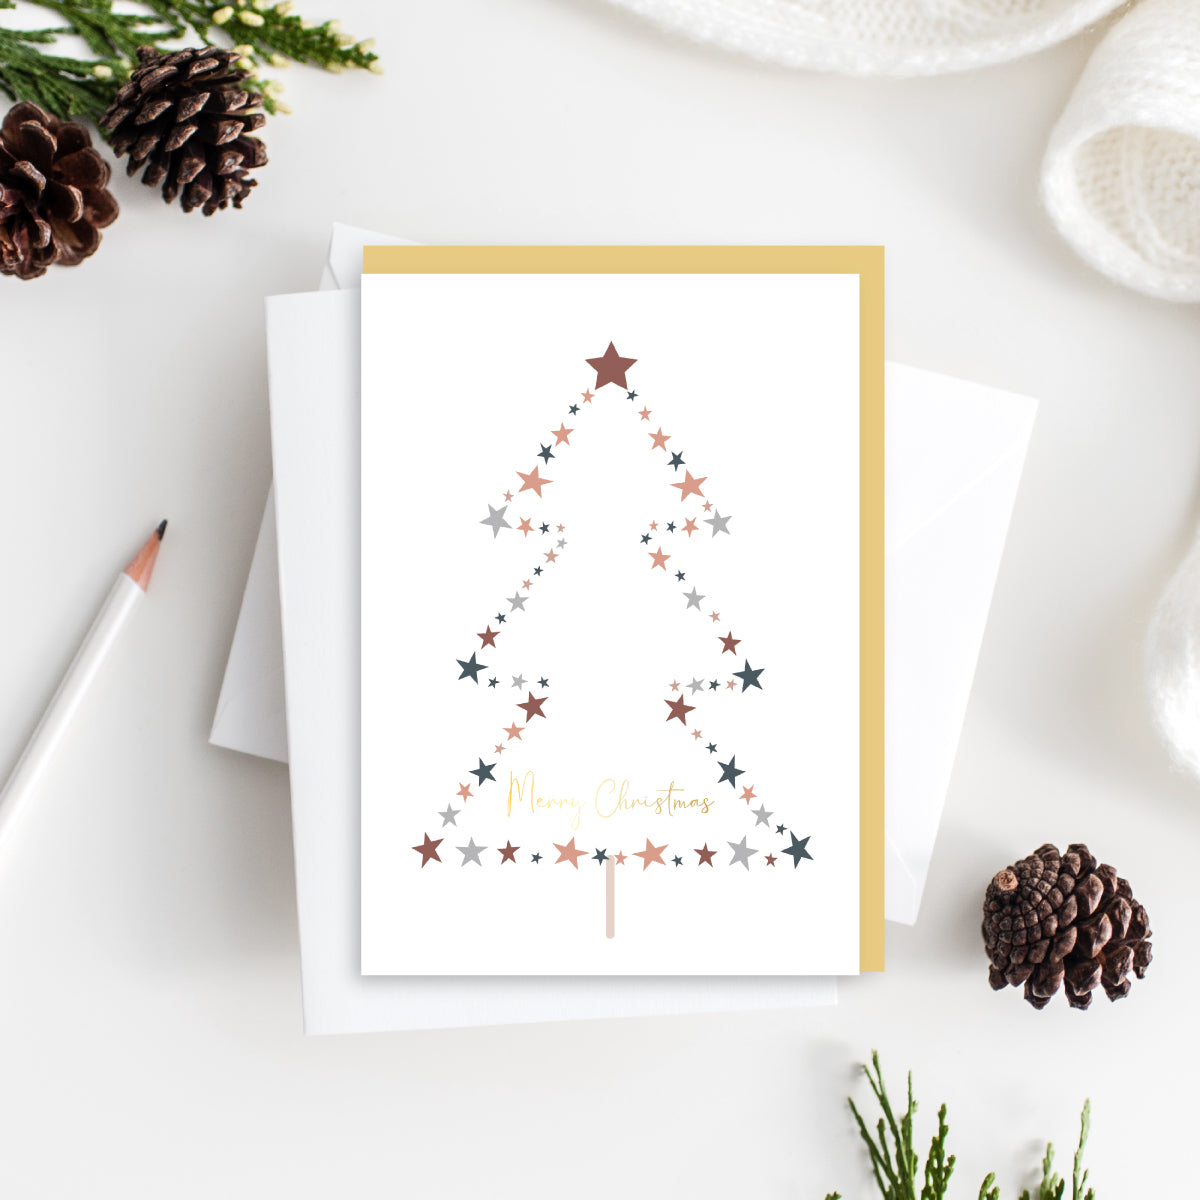 Merry Christmas Tree Card - Gold Foiled